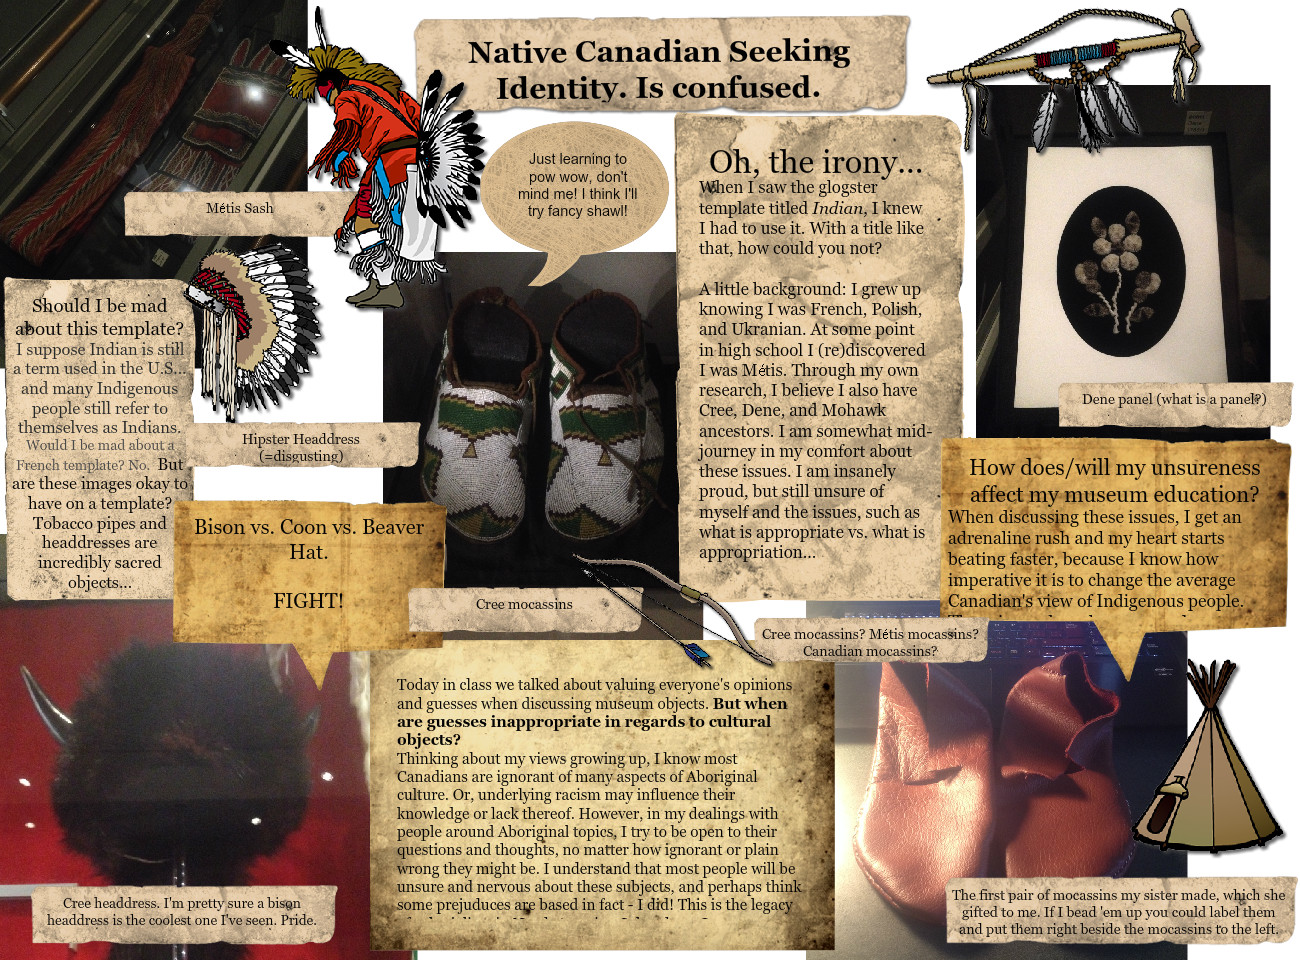 Native Canadian Seeking Identity. Is Confused.